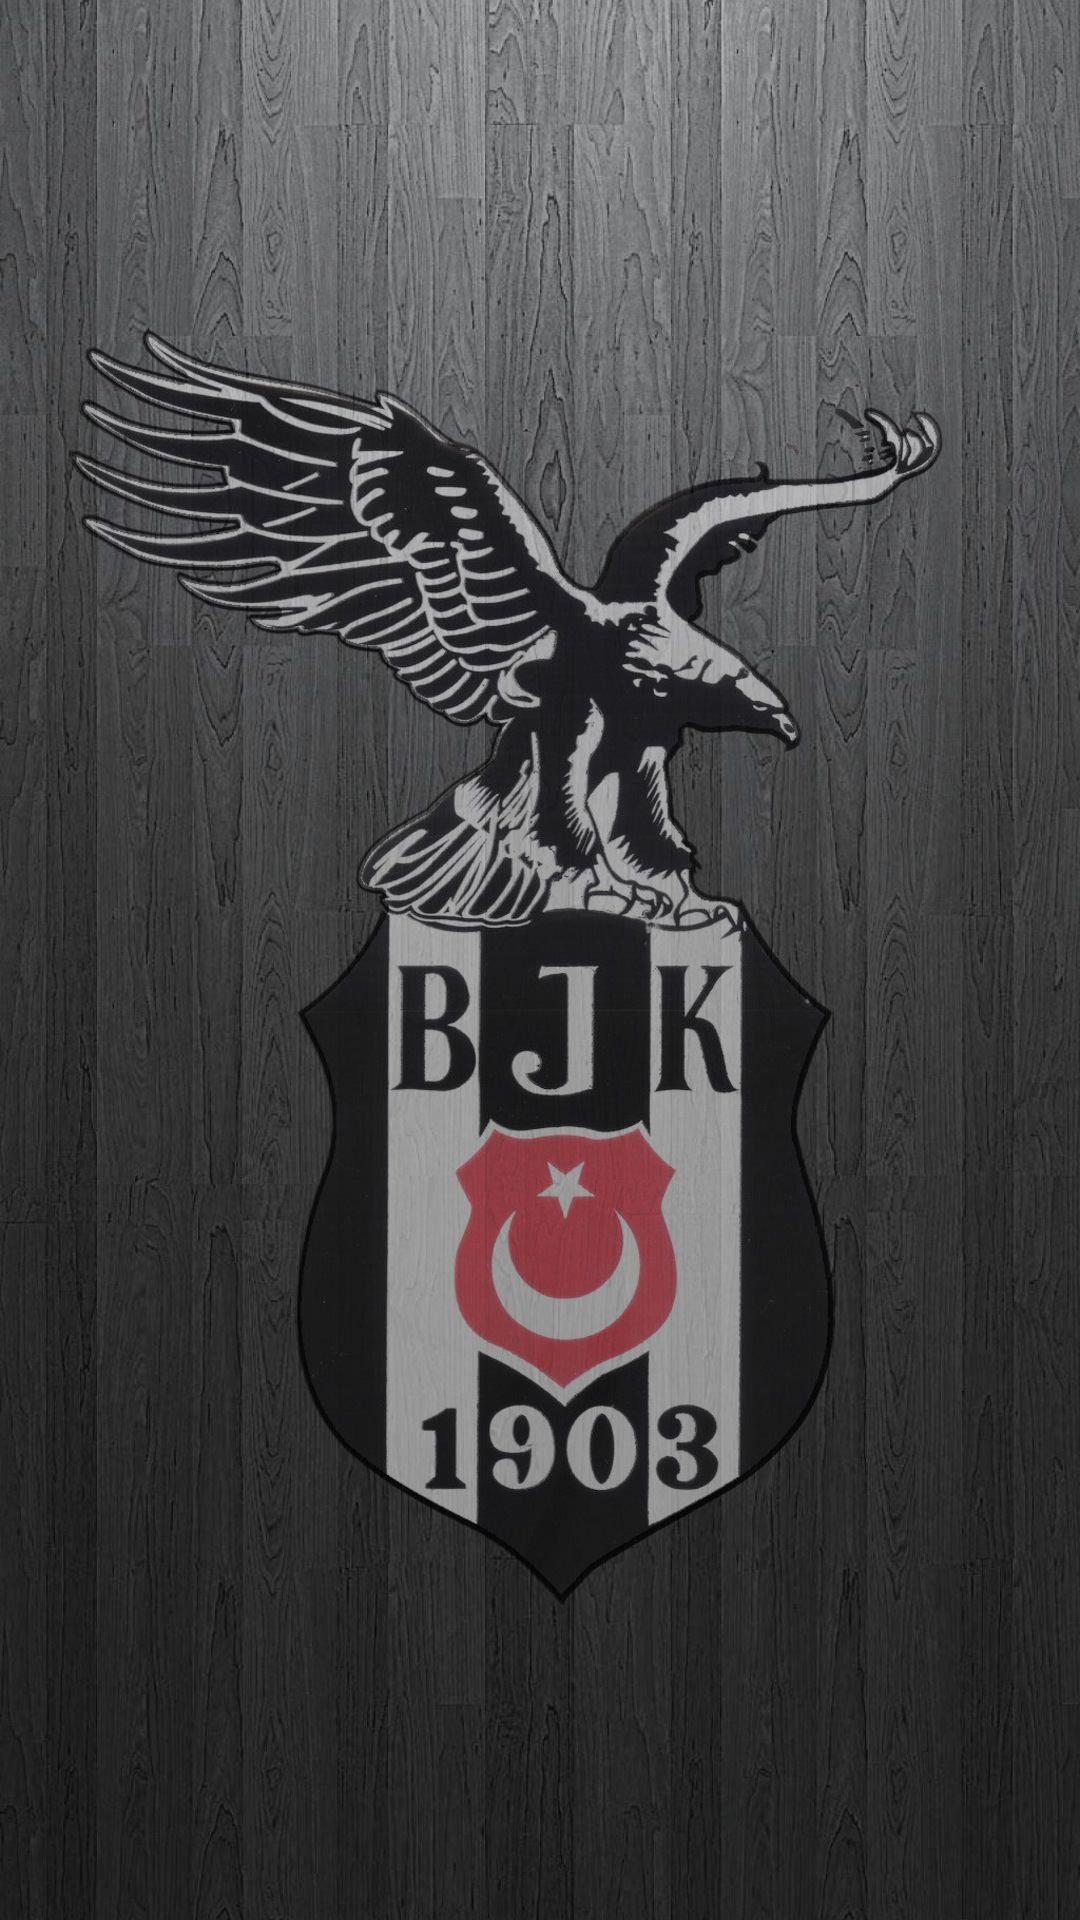 Muslim Wallpaper Hd Besiktas Wallpapers 76 Images